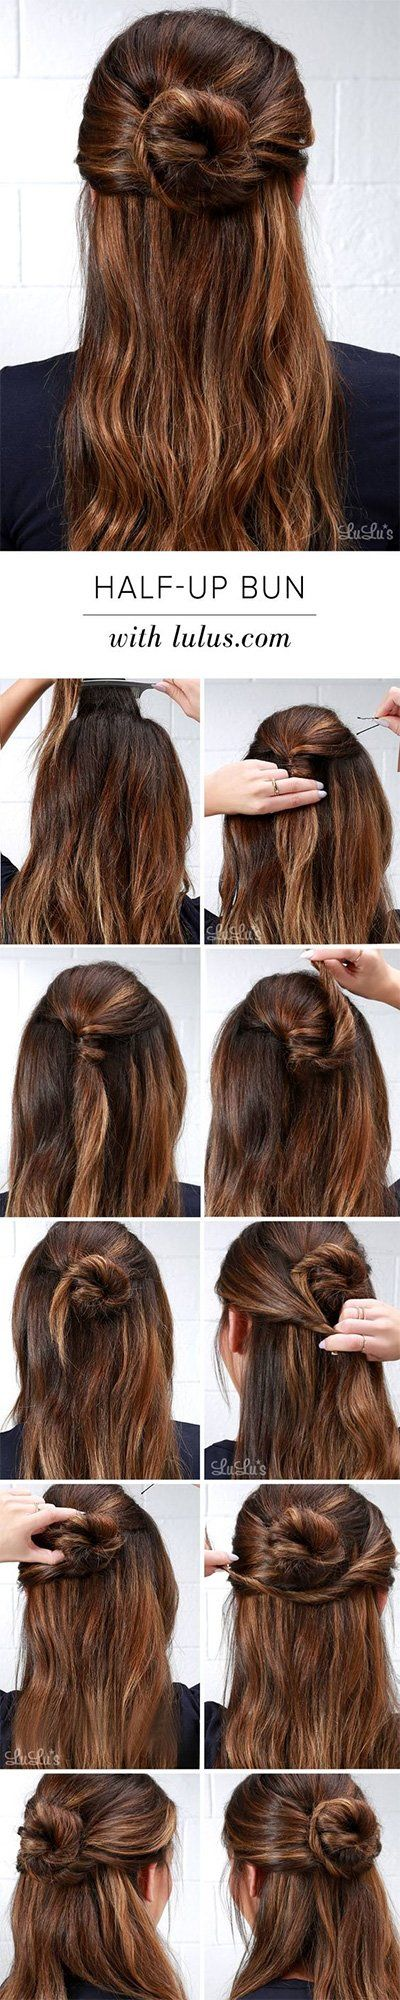 Source hair pinterest topknot tutorial bun styles and half bun bring out your best look yet this holiday with our half up bun hair tutorial perfect for a workday cocktail party or to simply bring life back to baditri Gallery